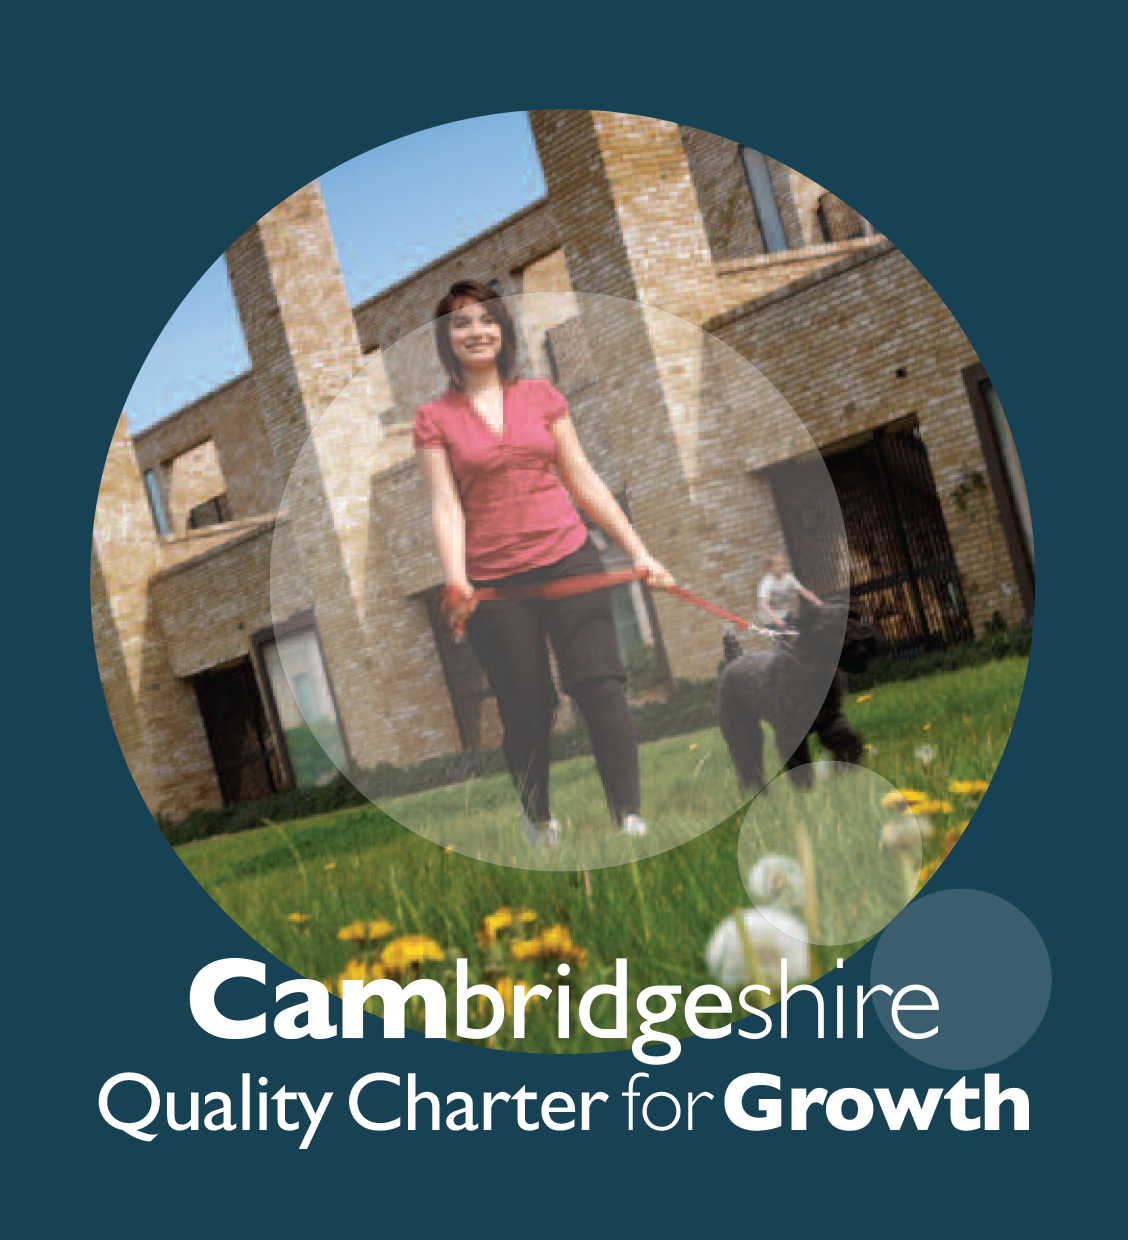 Cambridgeshire Quality Charter for Growth